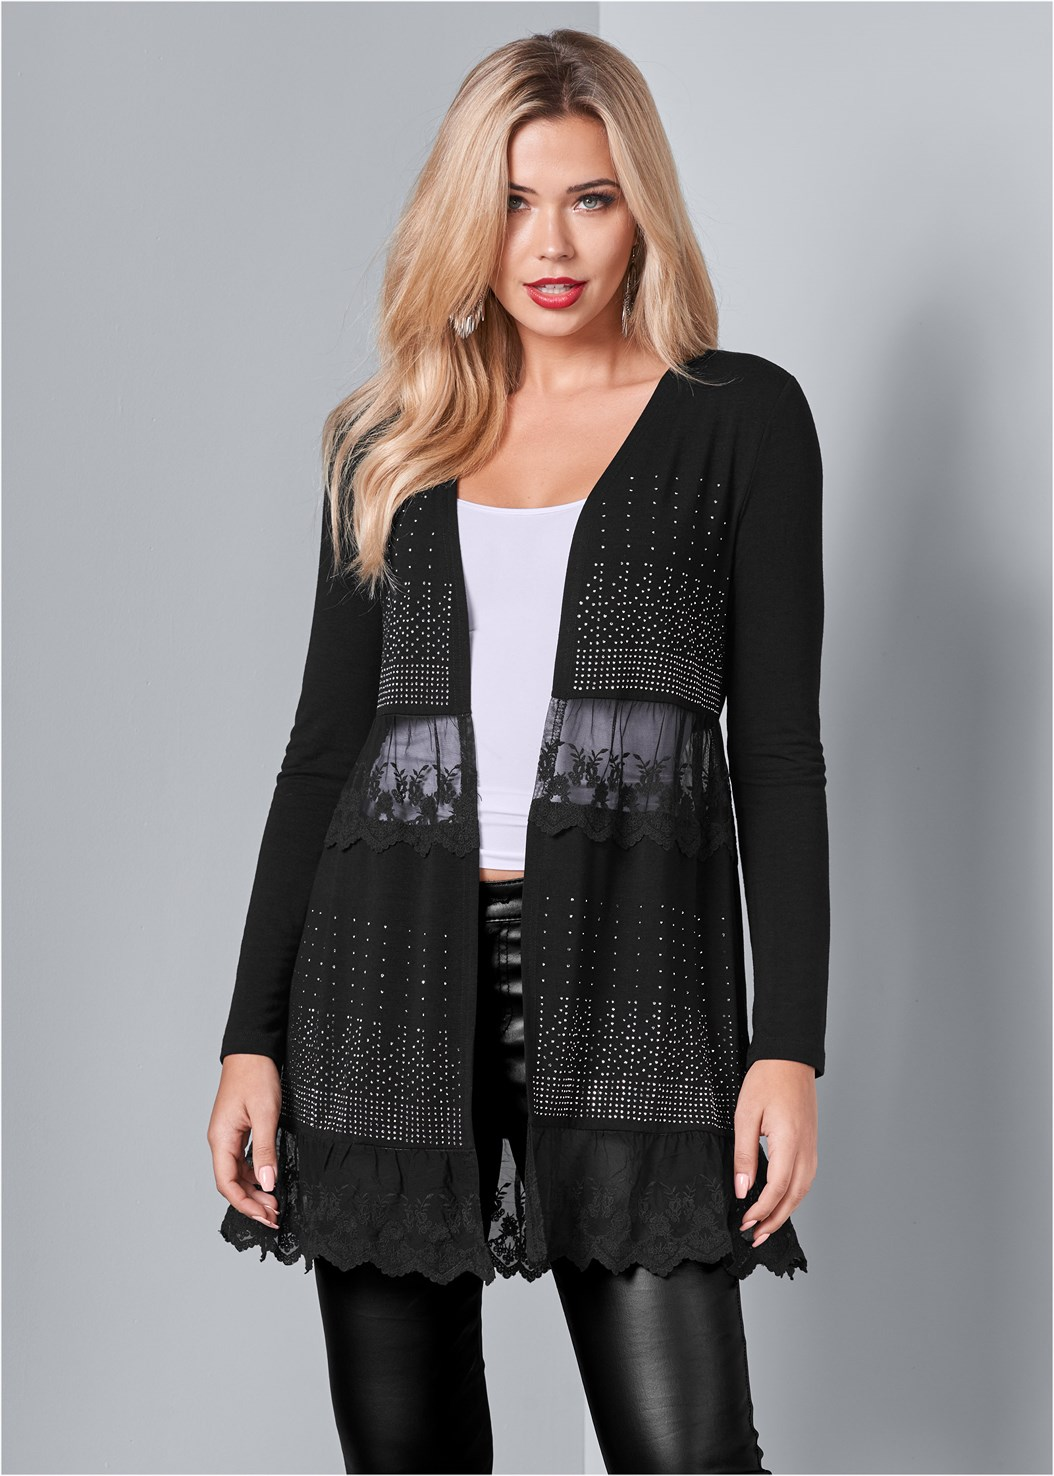 Embellished Lace Cardigan,Basic Cami Two Pack,Faux Leather Pants,Paillette Detail Scarf